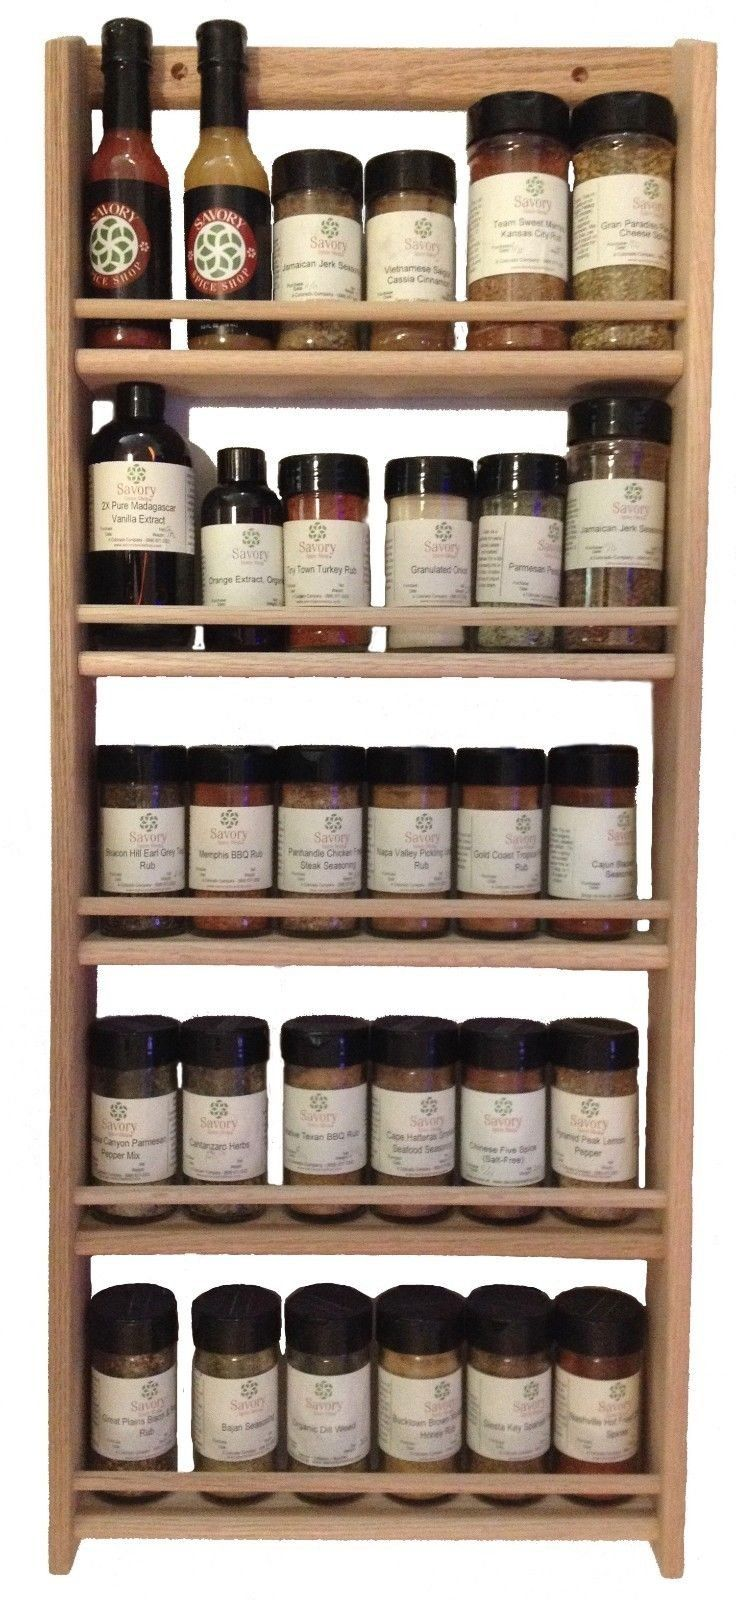 "Wooden Spice Rack Wall Mount Gorgeous Solid Oak Wood Spice Rack  3275""h X 1375 ""w  Wall Mount Wooden Inspiration Design"